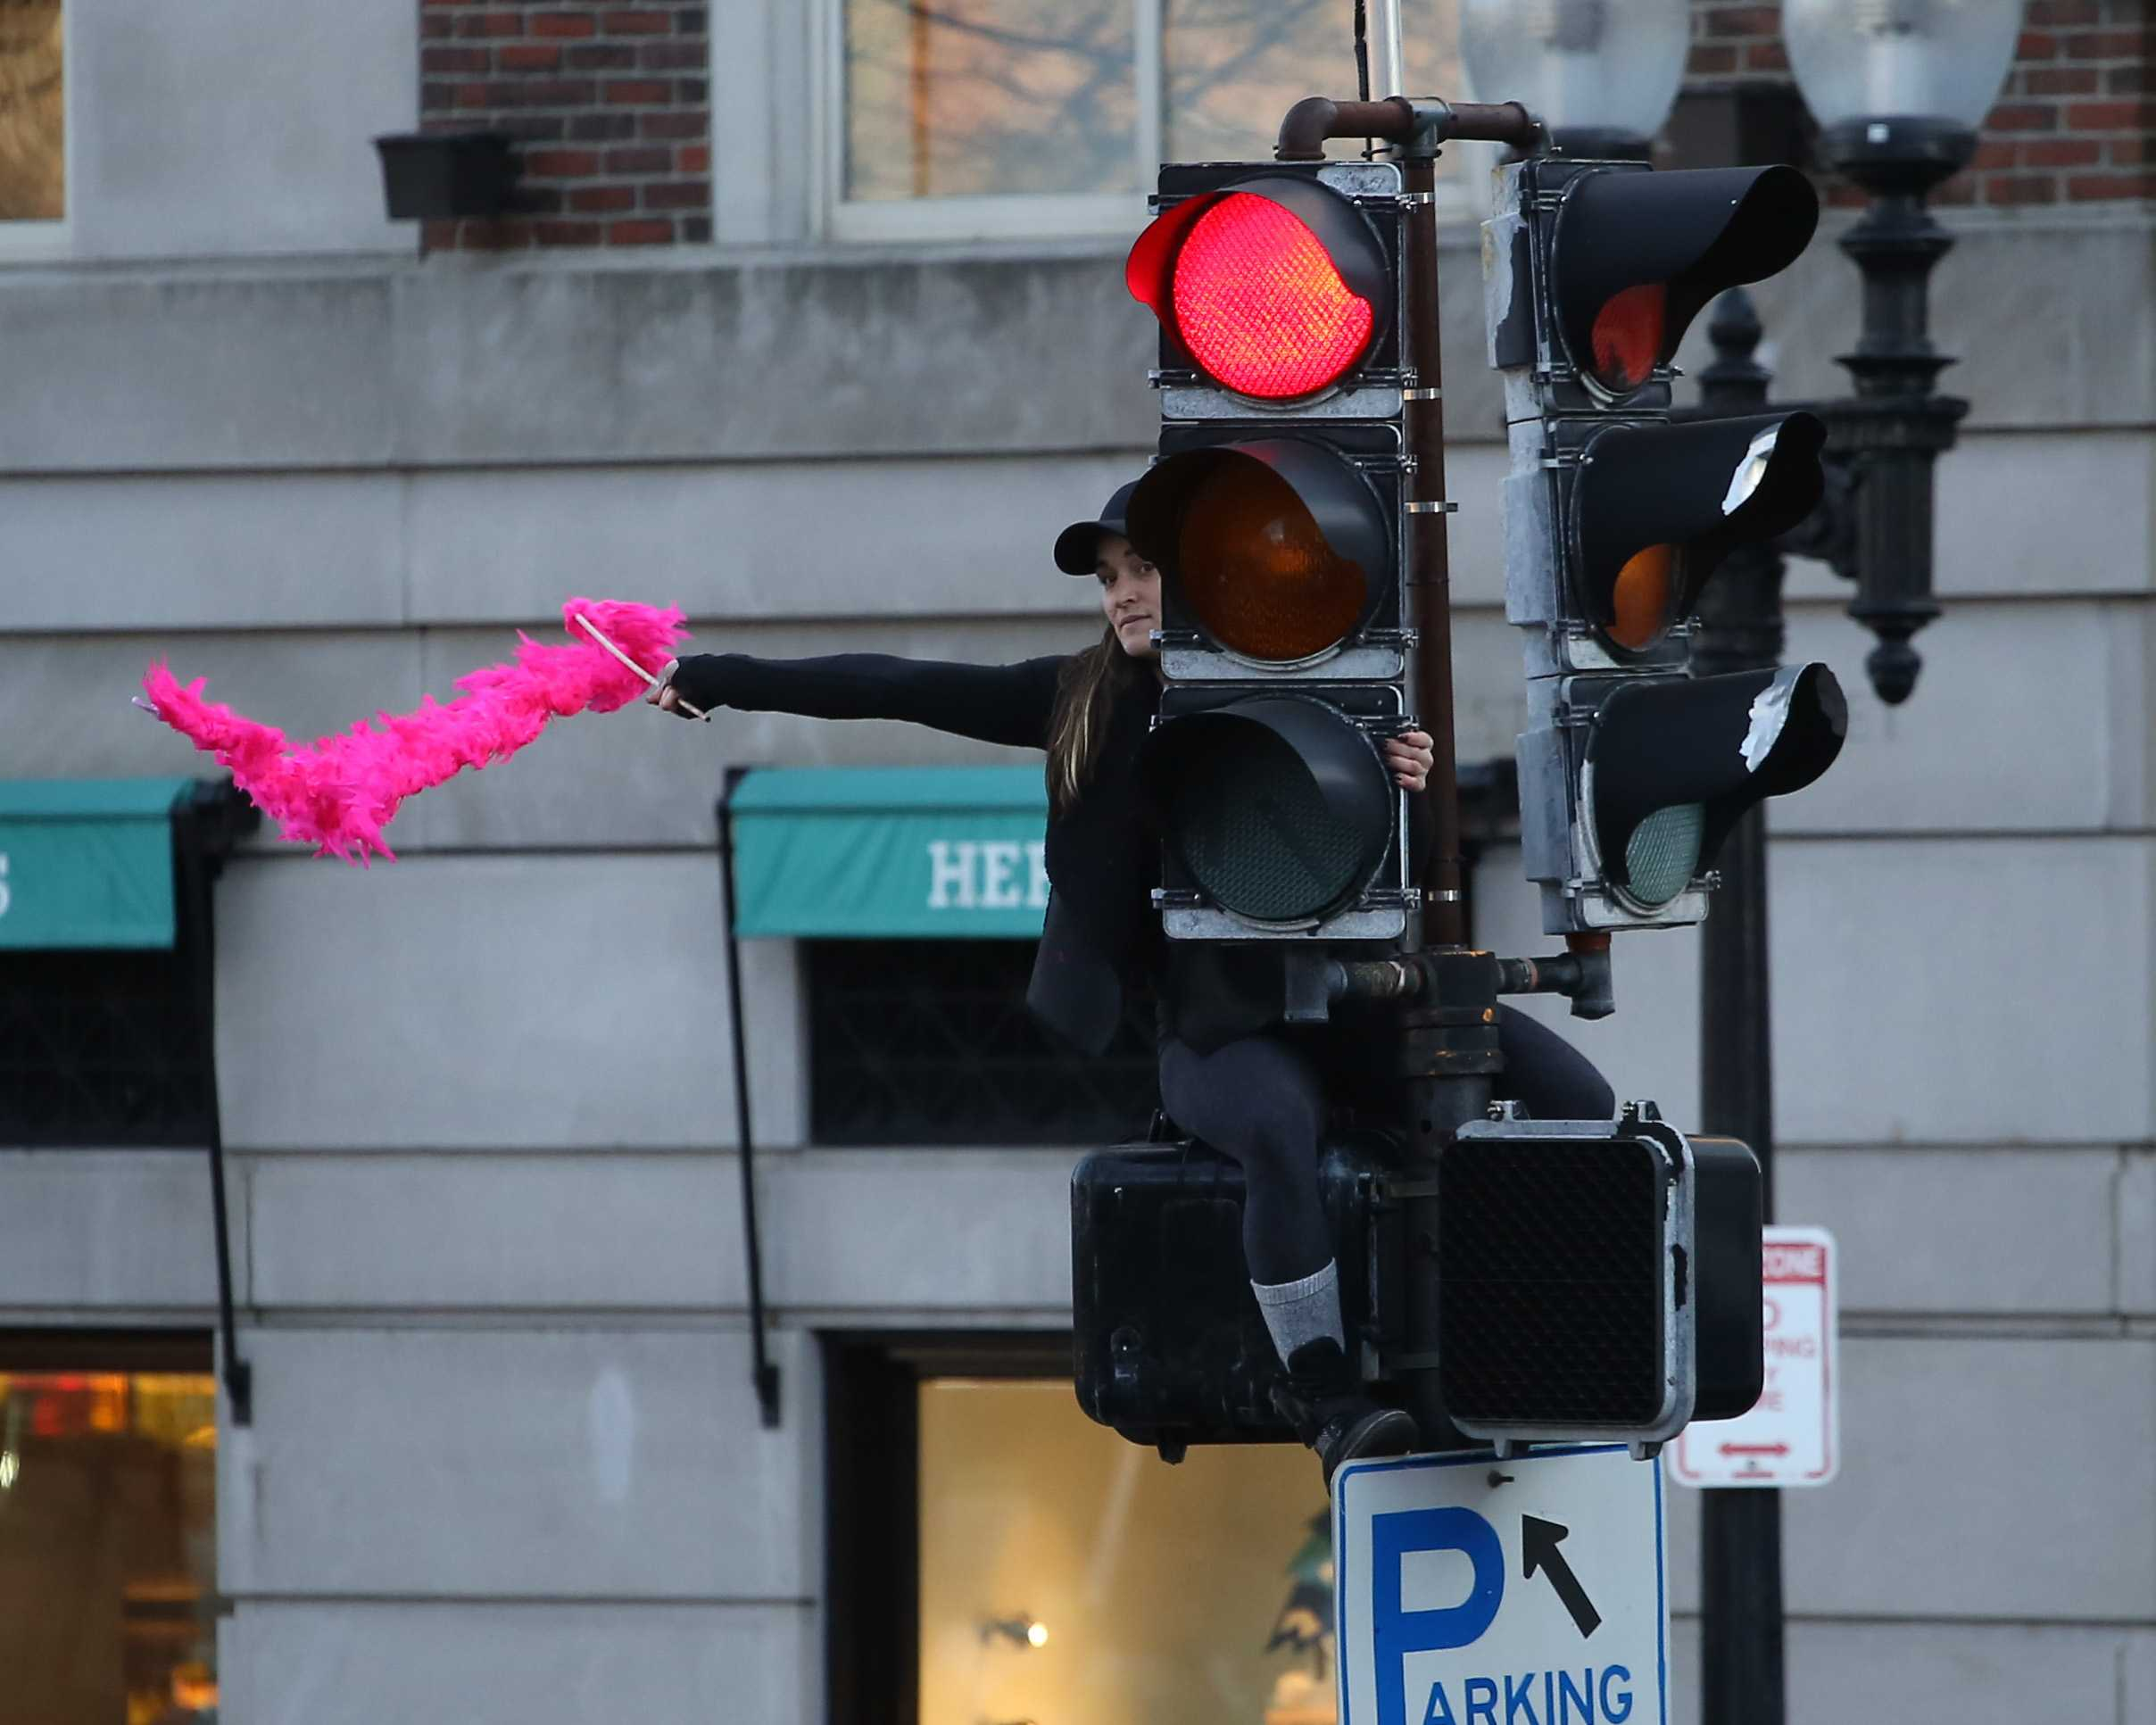 A+member+of+the+march+waves+a+pink+streamer+from+a+traffic+light+post+on+the+corner+of+Boylston+Street+and+Arlington+Street.